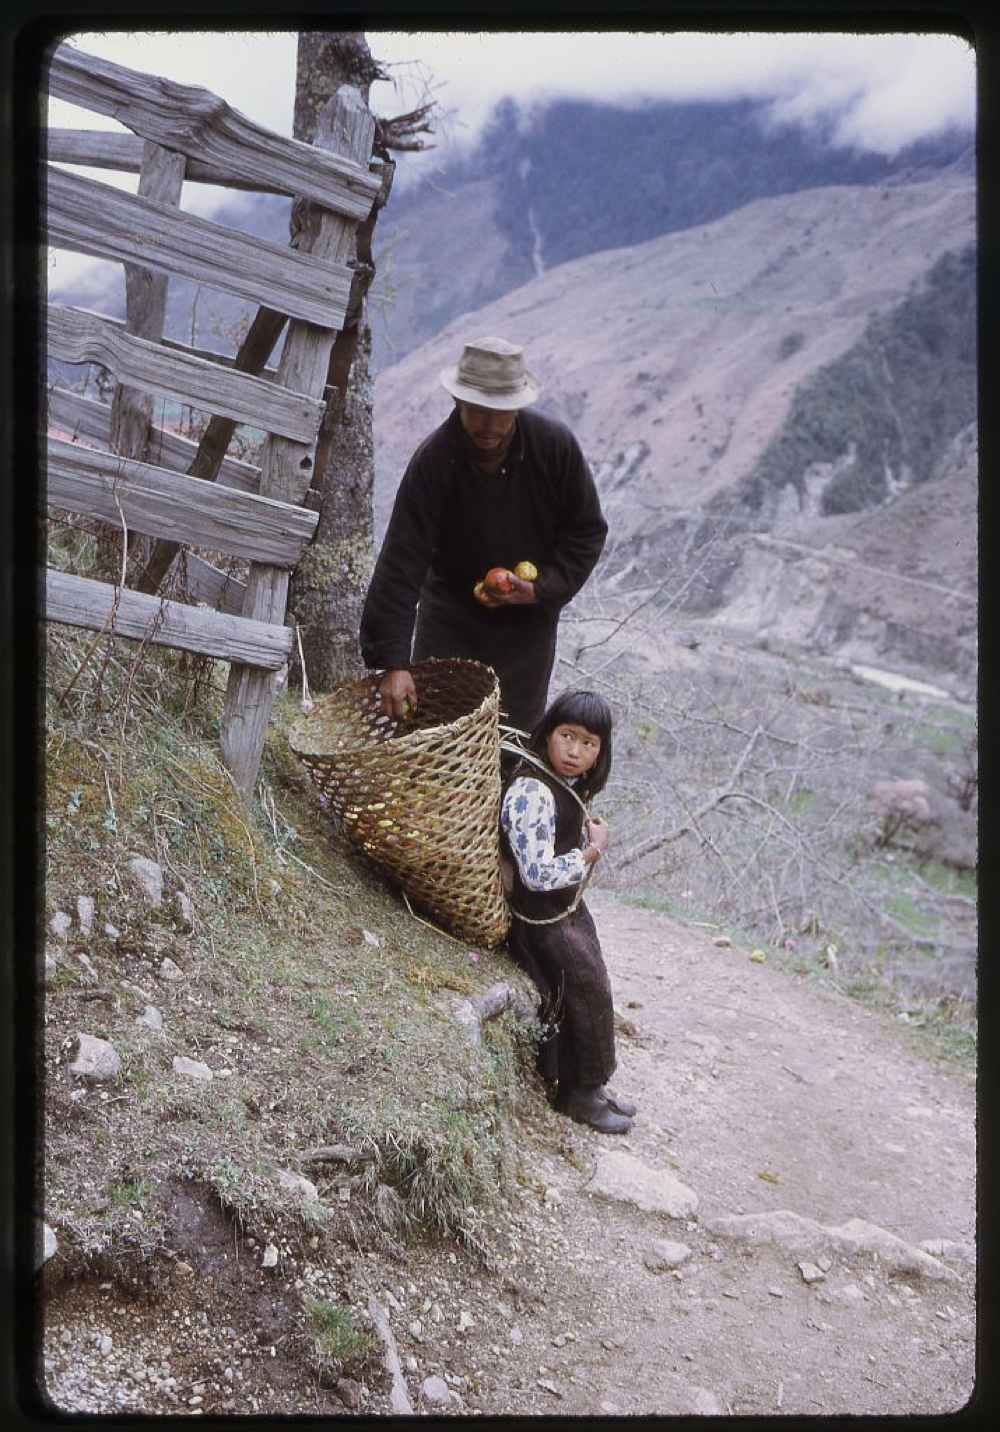 Man putting apples into basket which is on a girl's back, Lachung, Sikkim